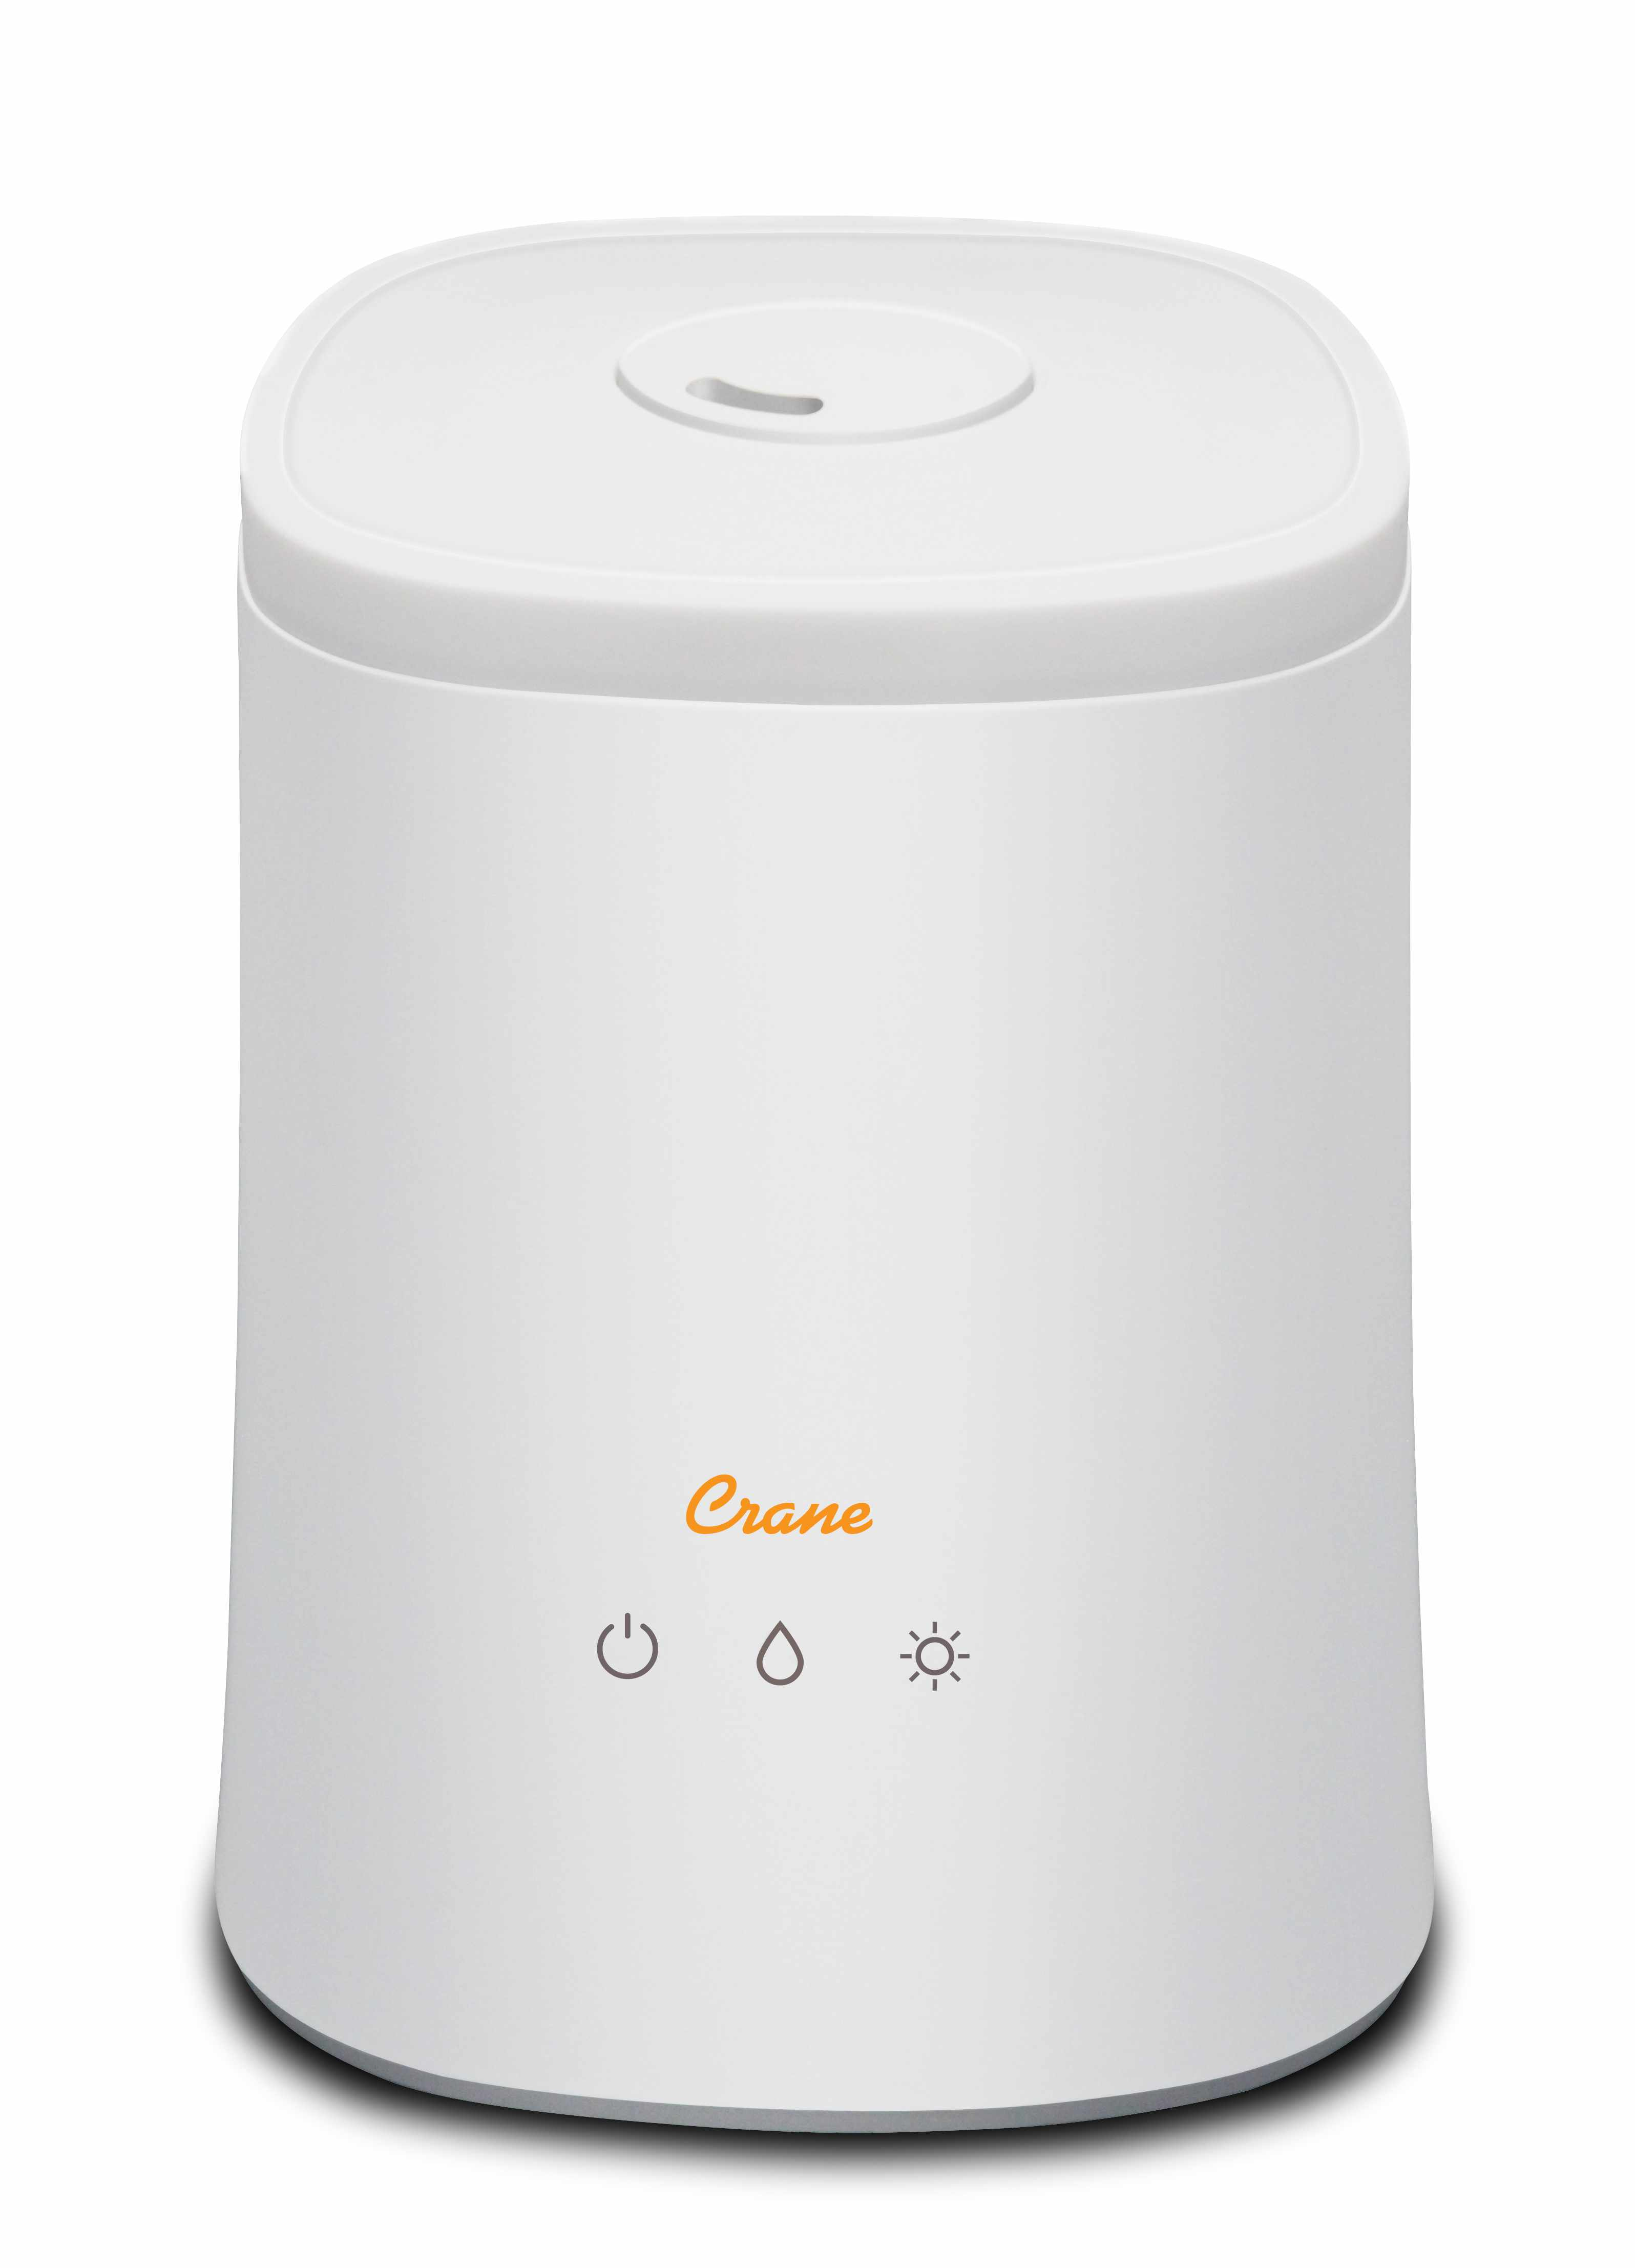 Crane Cool Mist Top Fill Humidifier and Aroma Diffuser